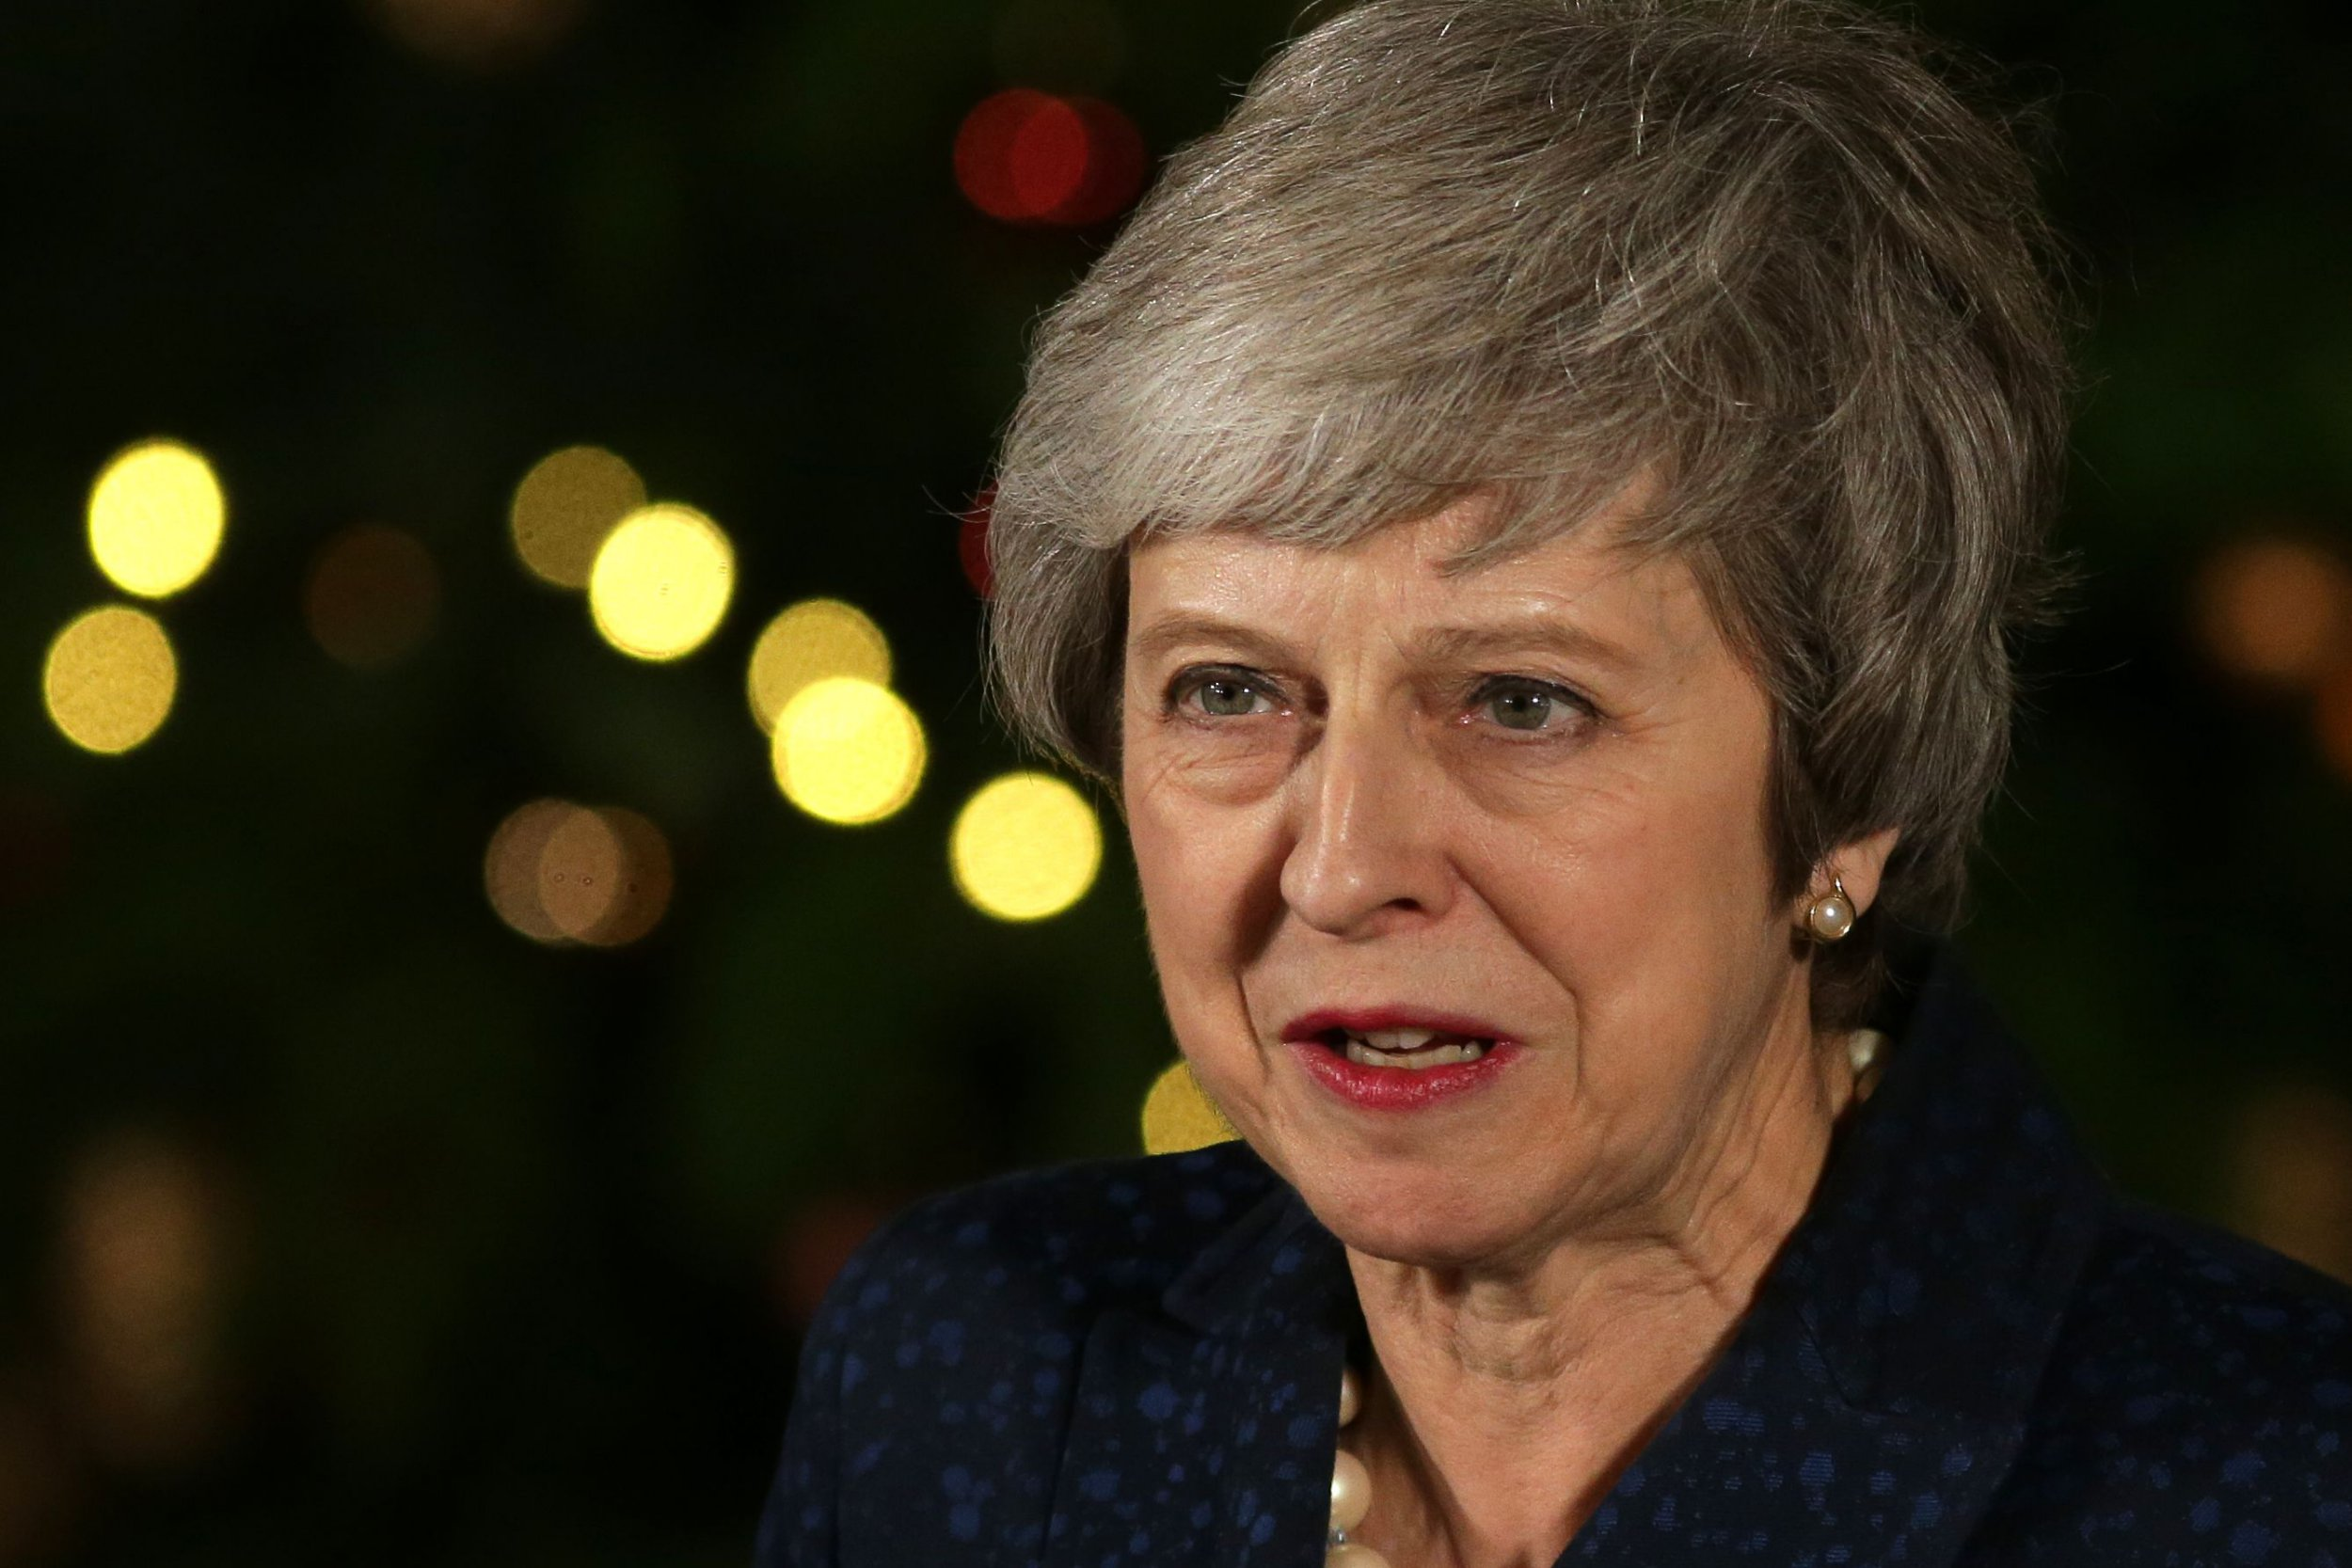 Britain's Prime Minister Theresa May makes a statement outside 10 Downing Street in central London after winning a confidence vote on December 12, 2018. (Photo by Daniel LEAL-OLIVAS / AFP)DANIEL LEAL-OLIVAS/AFP/Getty Images